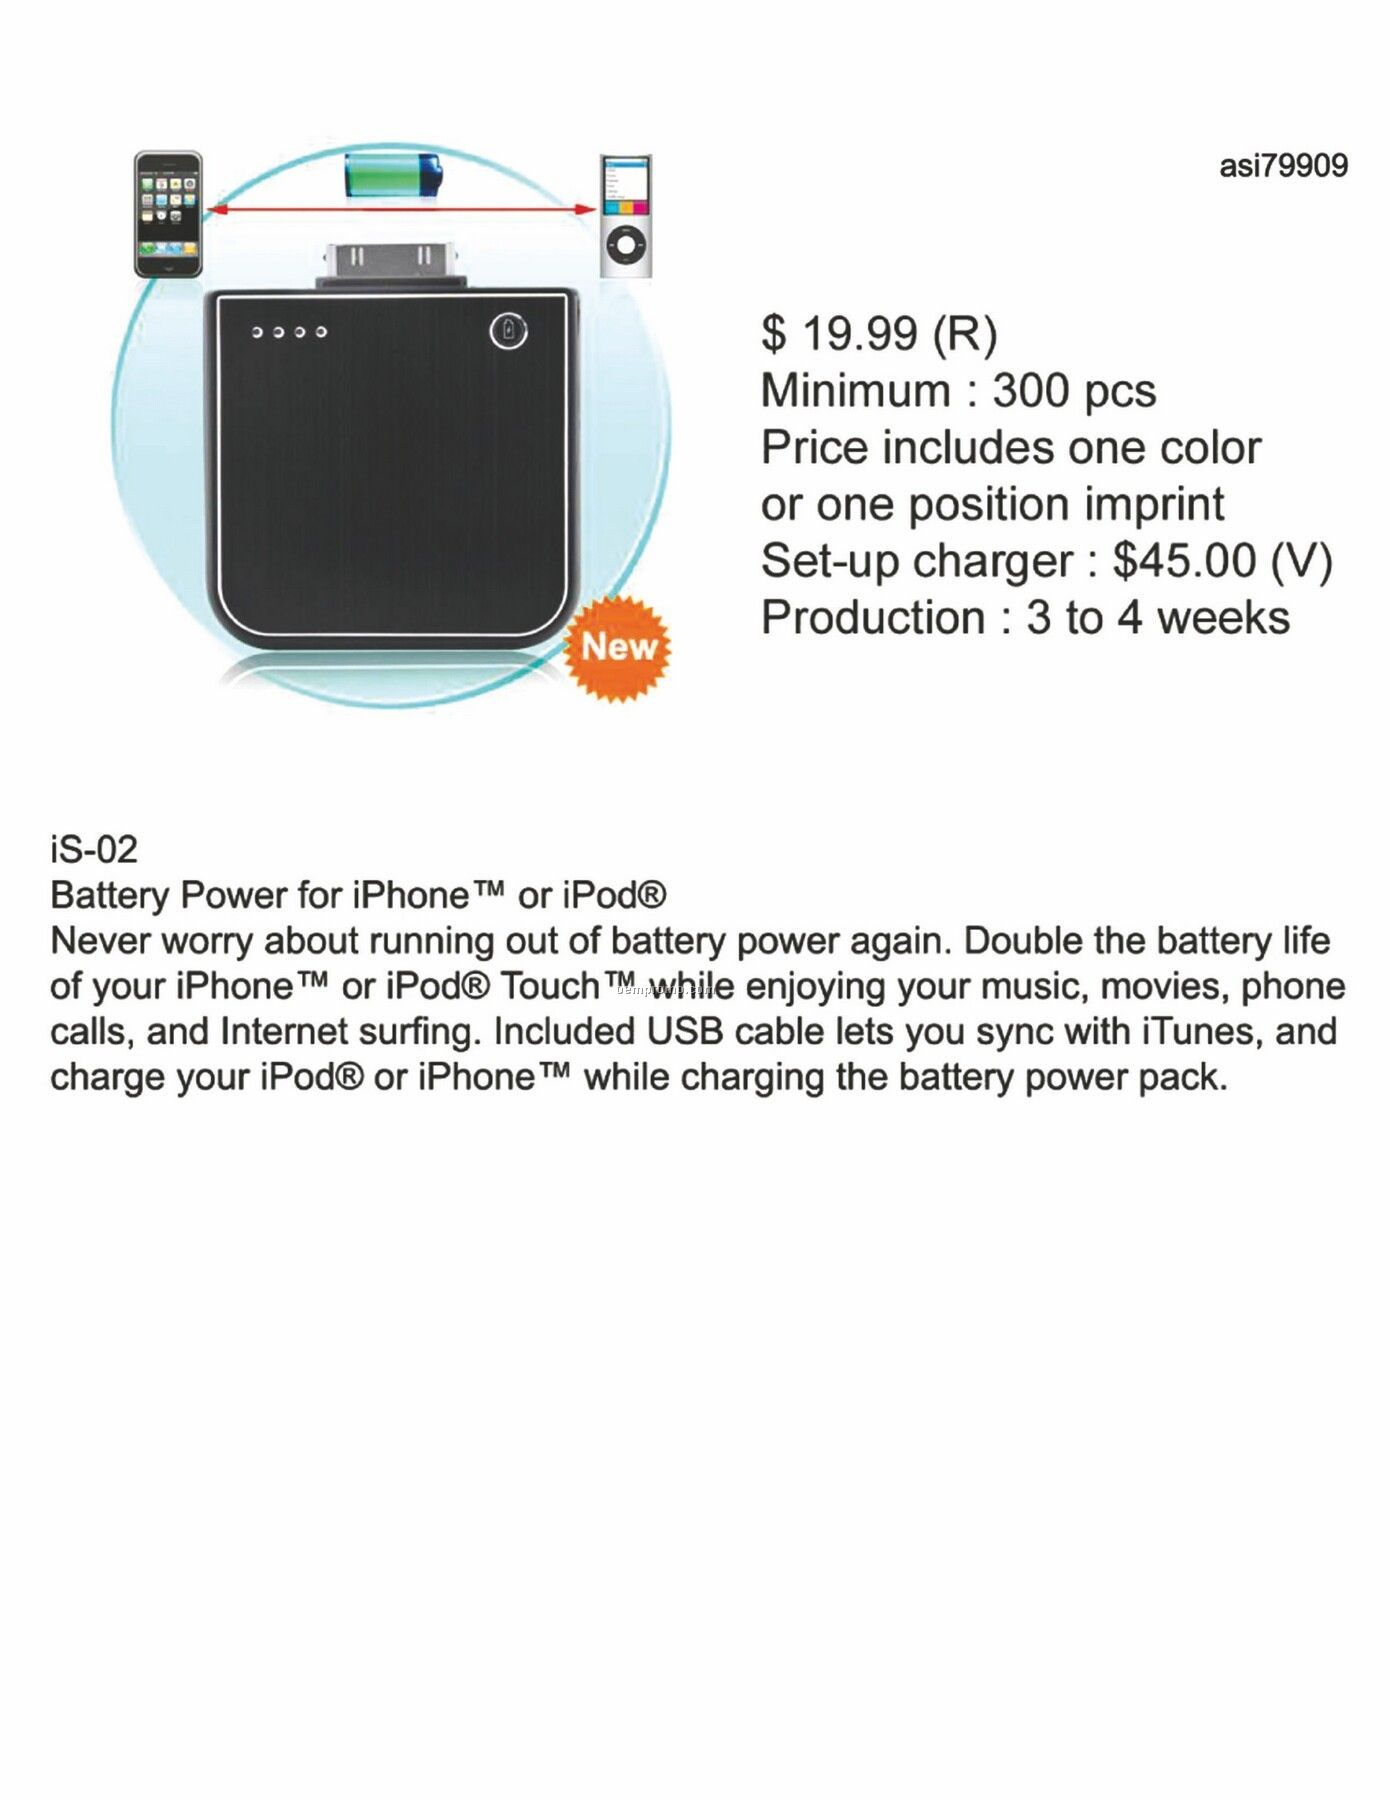 Battery Power For Iphone, Ipod